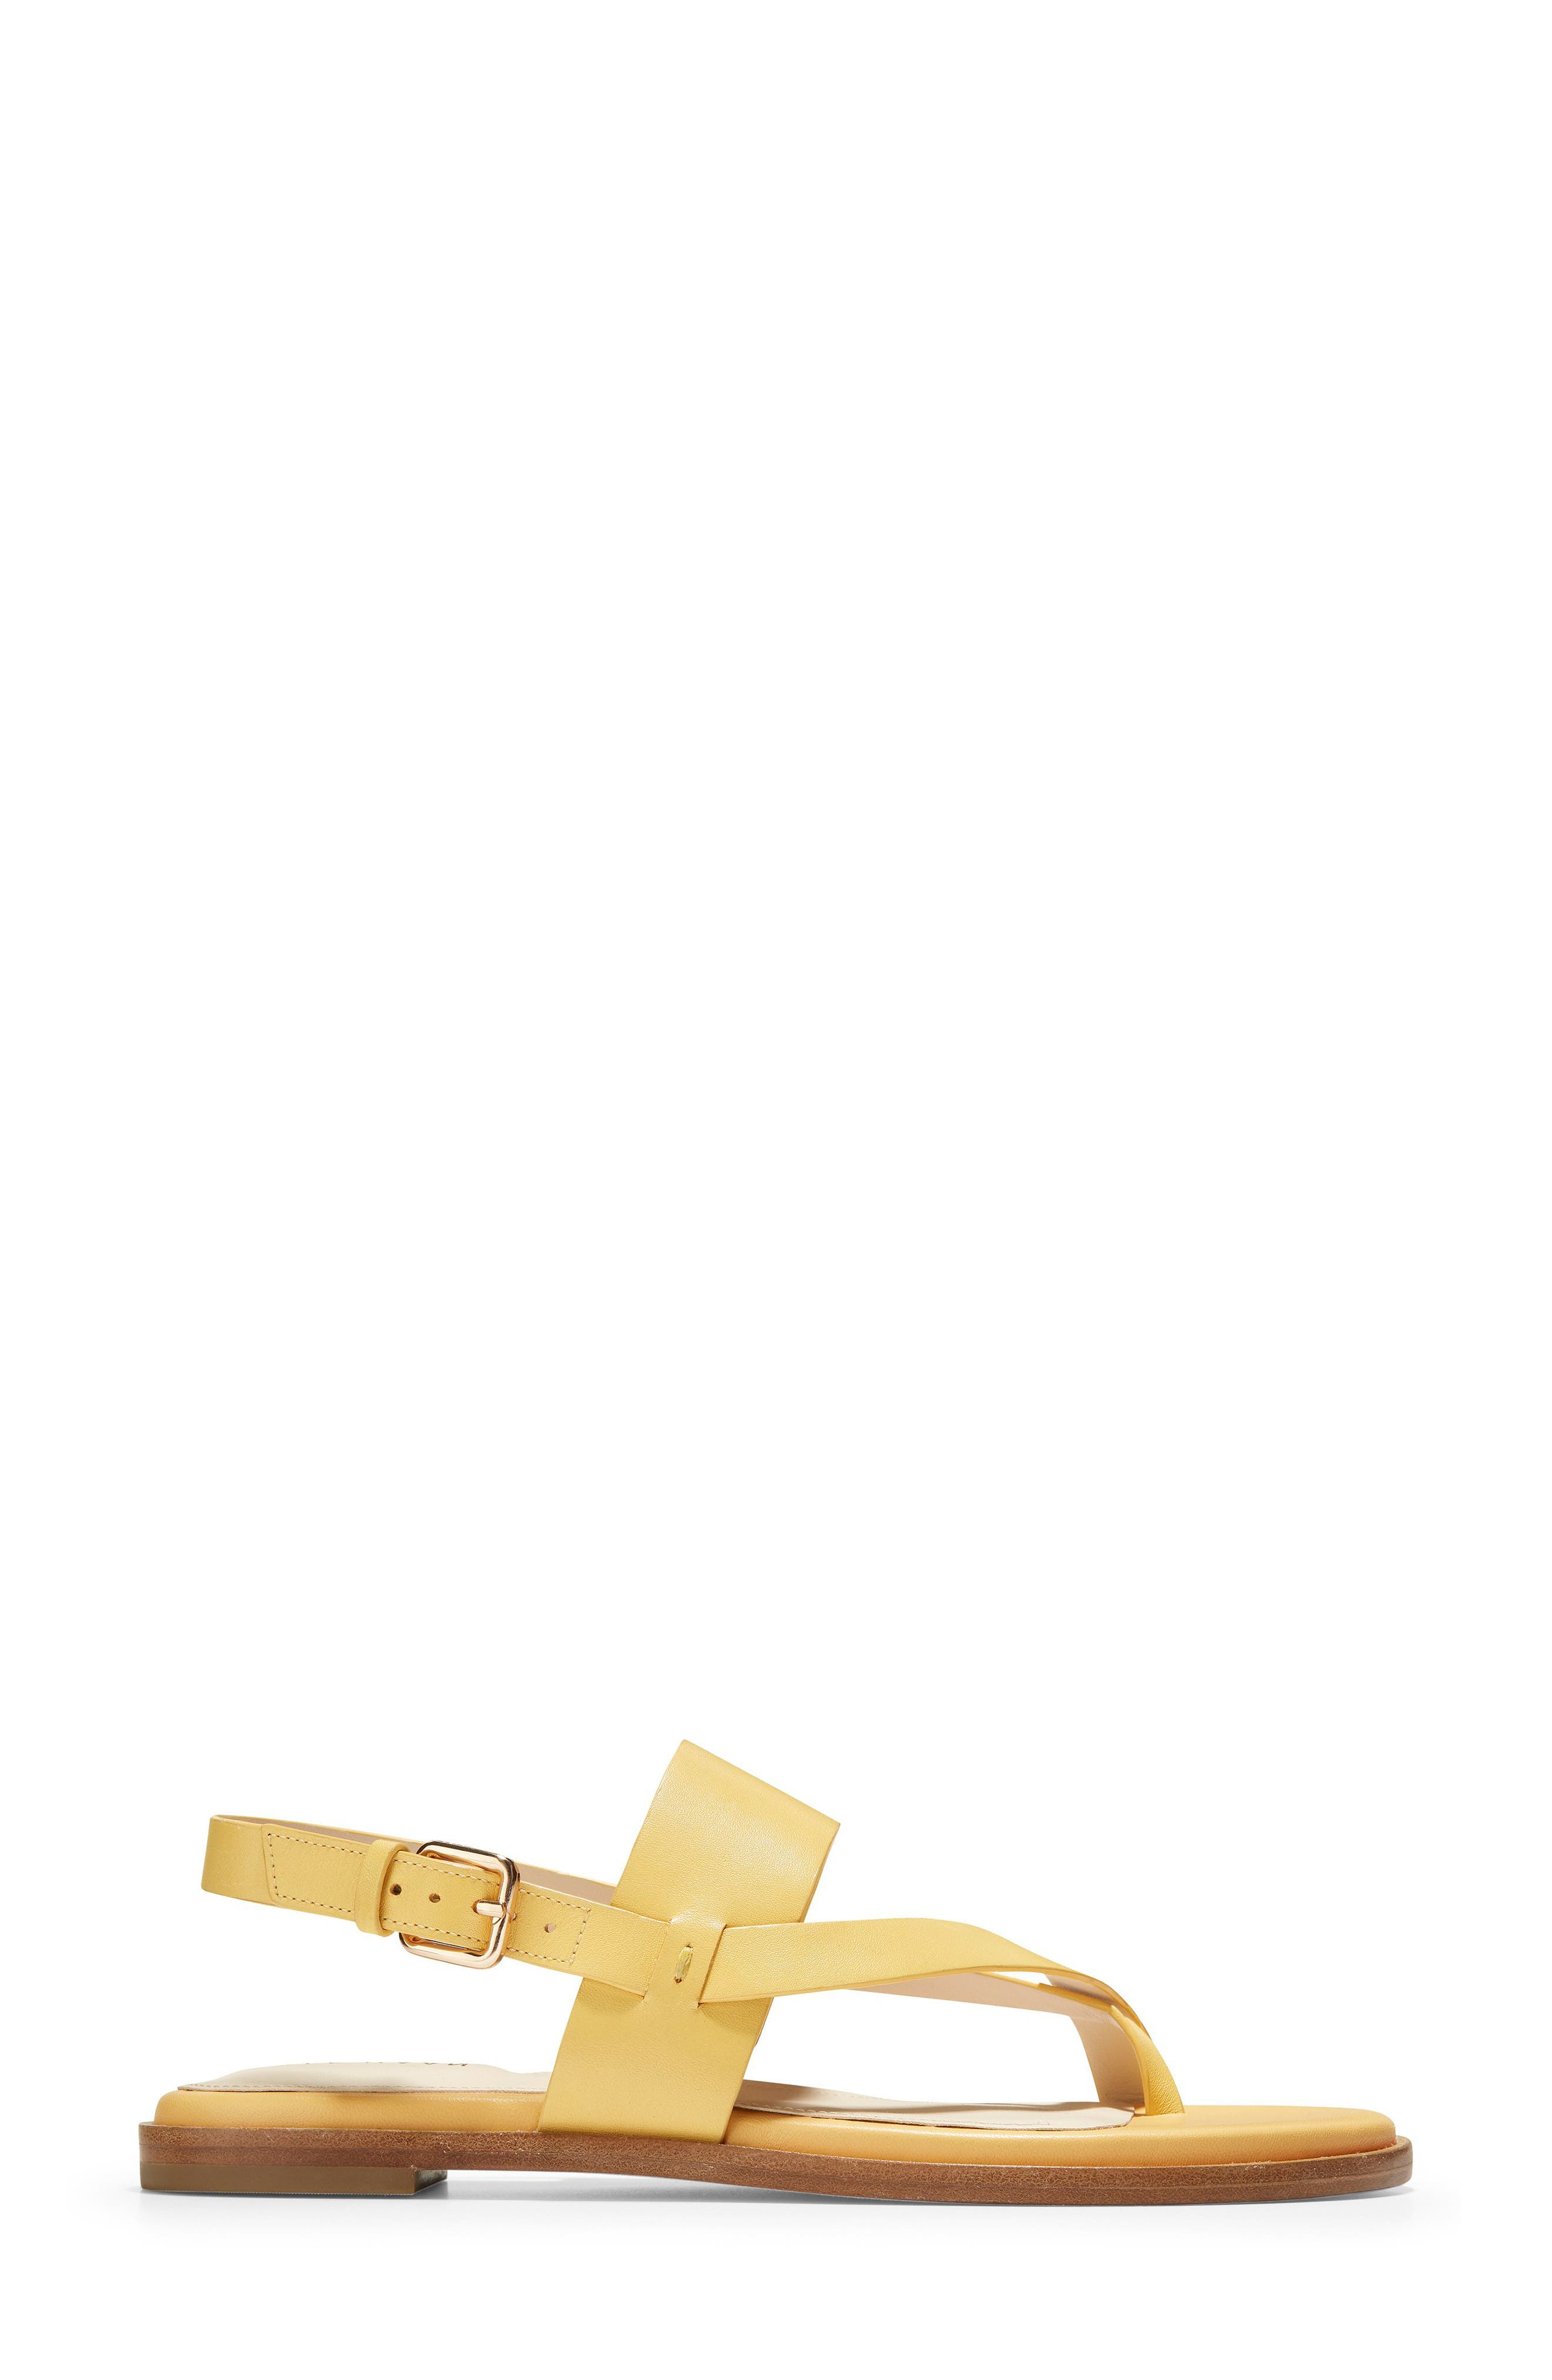 COLE HAAN, Anica Sandal, Alternate thumbnail 3, color, SUNSET GOLD LEATHER